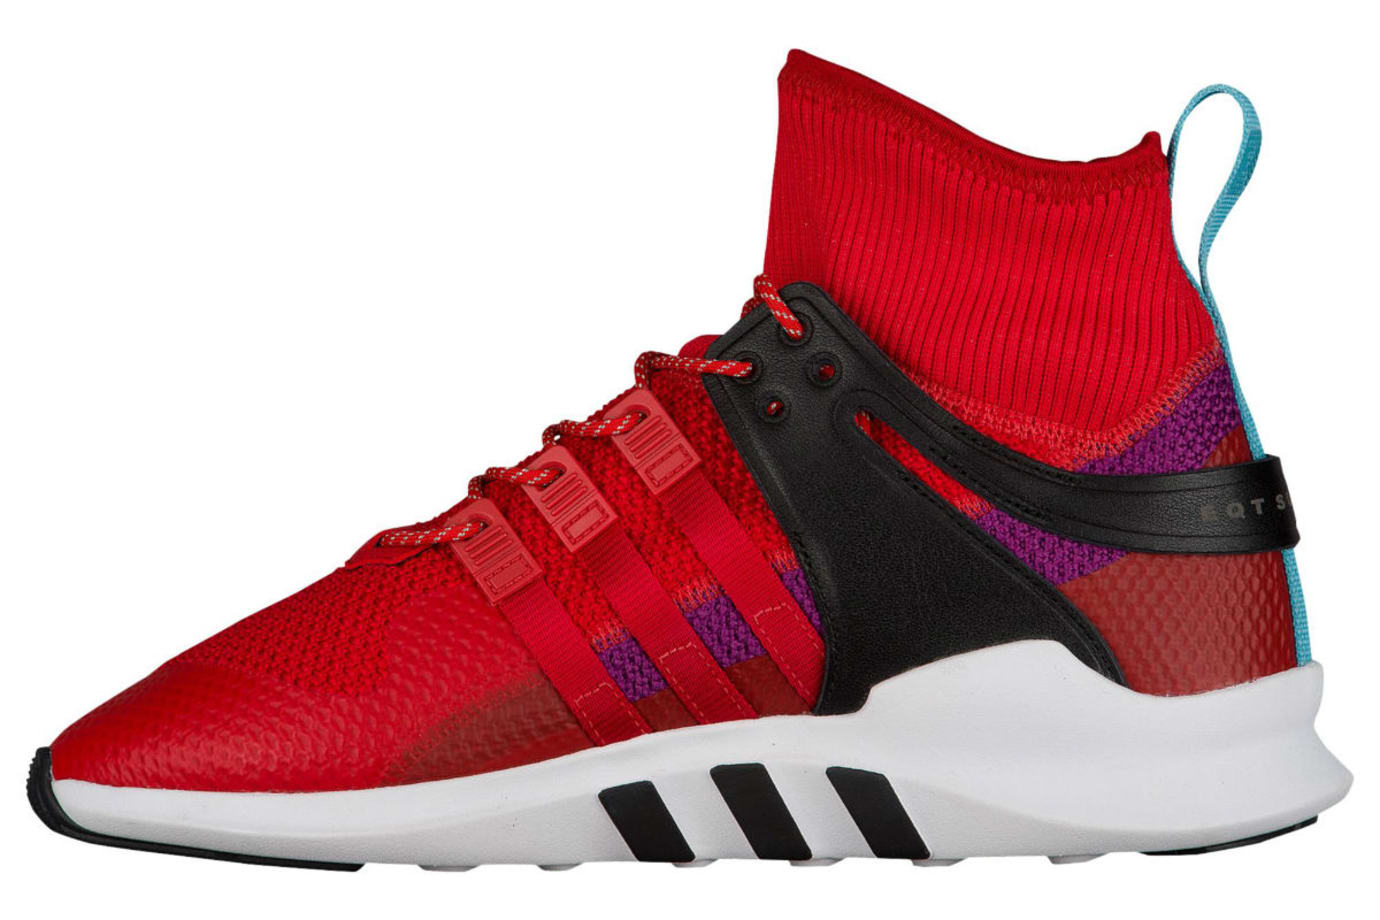 best authentic d629f 7f6f6 Adidas EQT Support ADV Winter Scarlet Shock Purple Release Date Medial